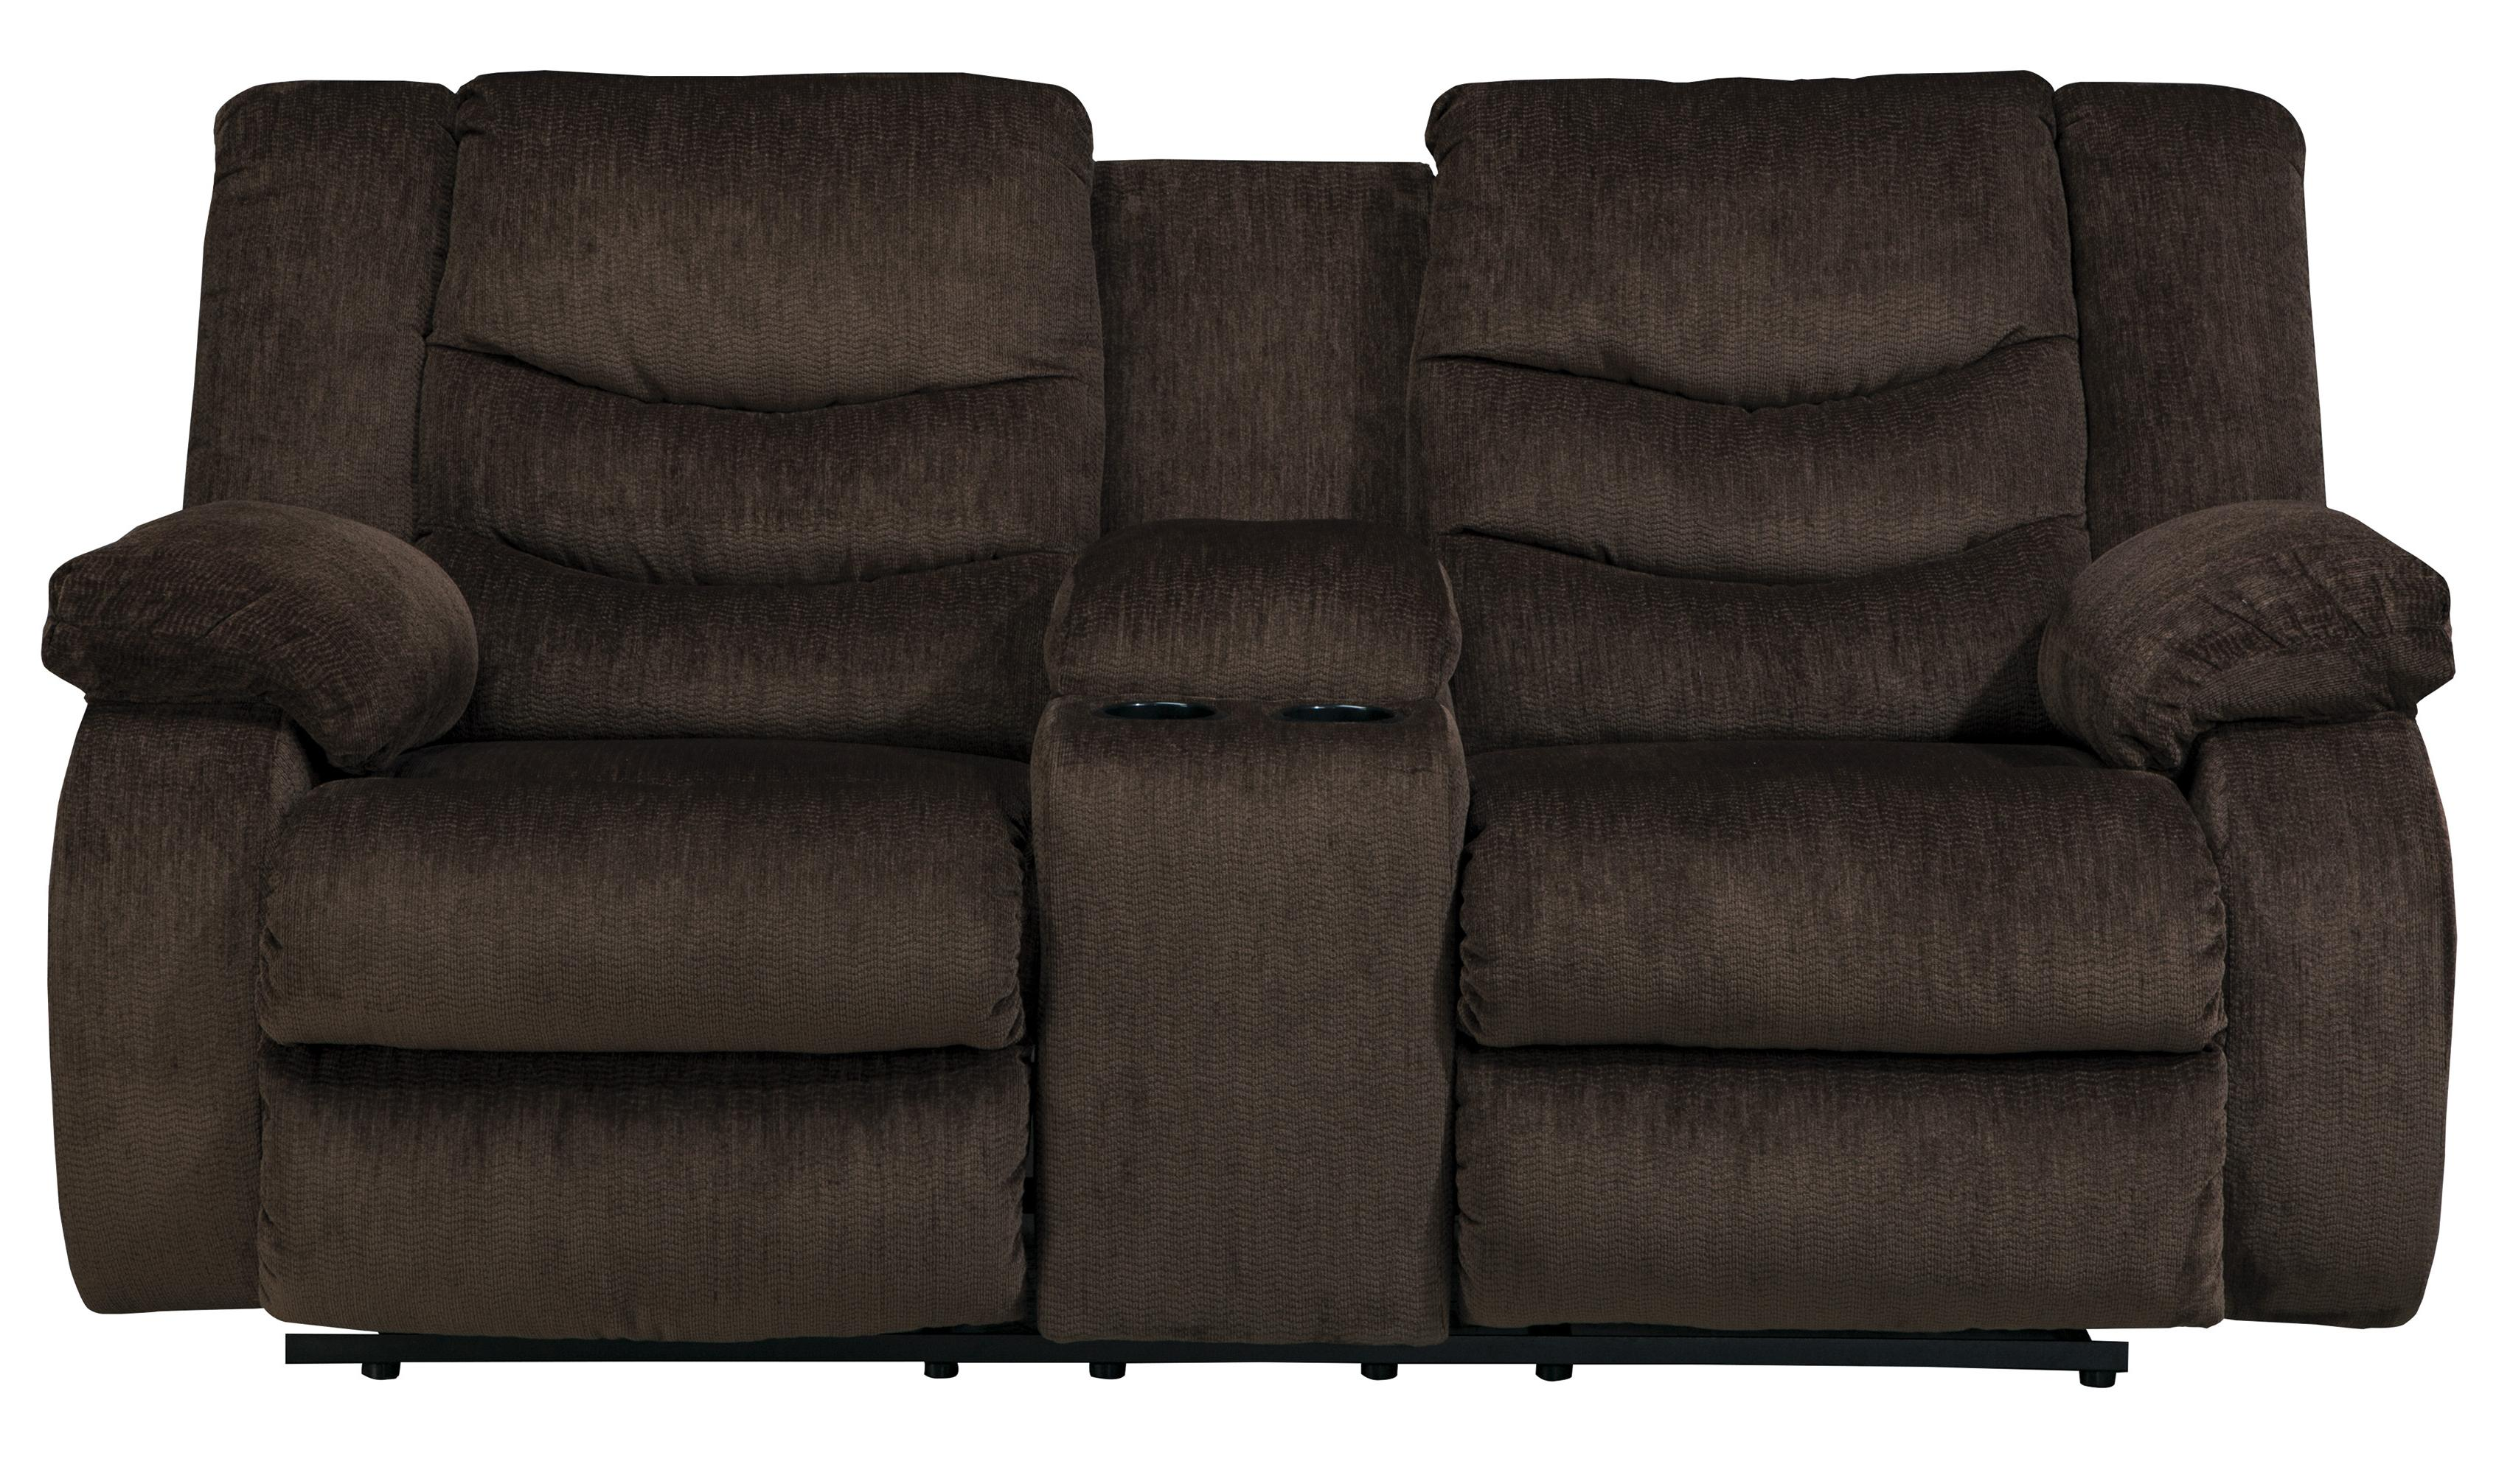 Signature Design by Ashley Garek - Cocoa Double Reclining Loveseat w/ Console - Item Number: 9200394